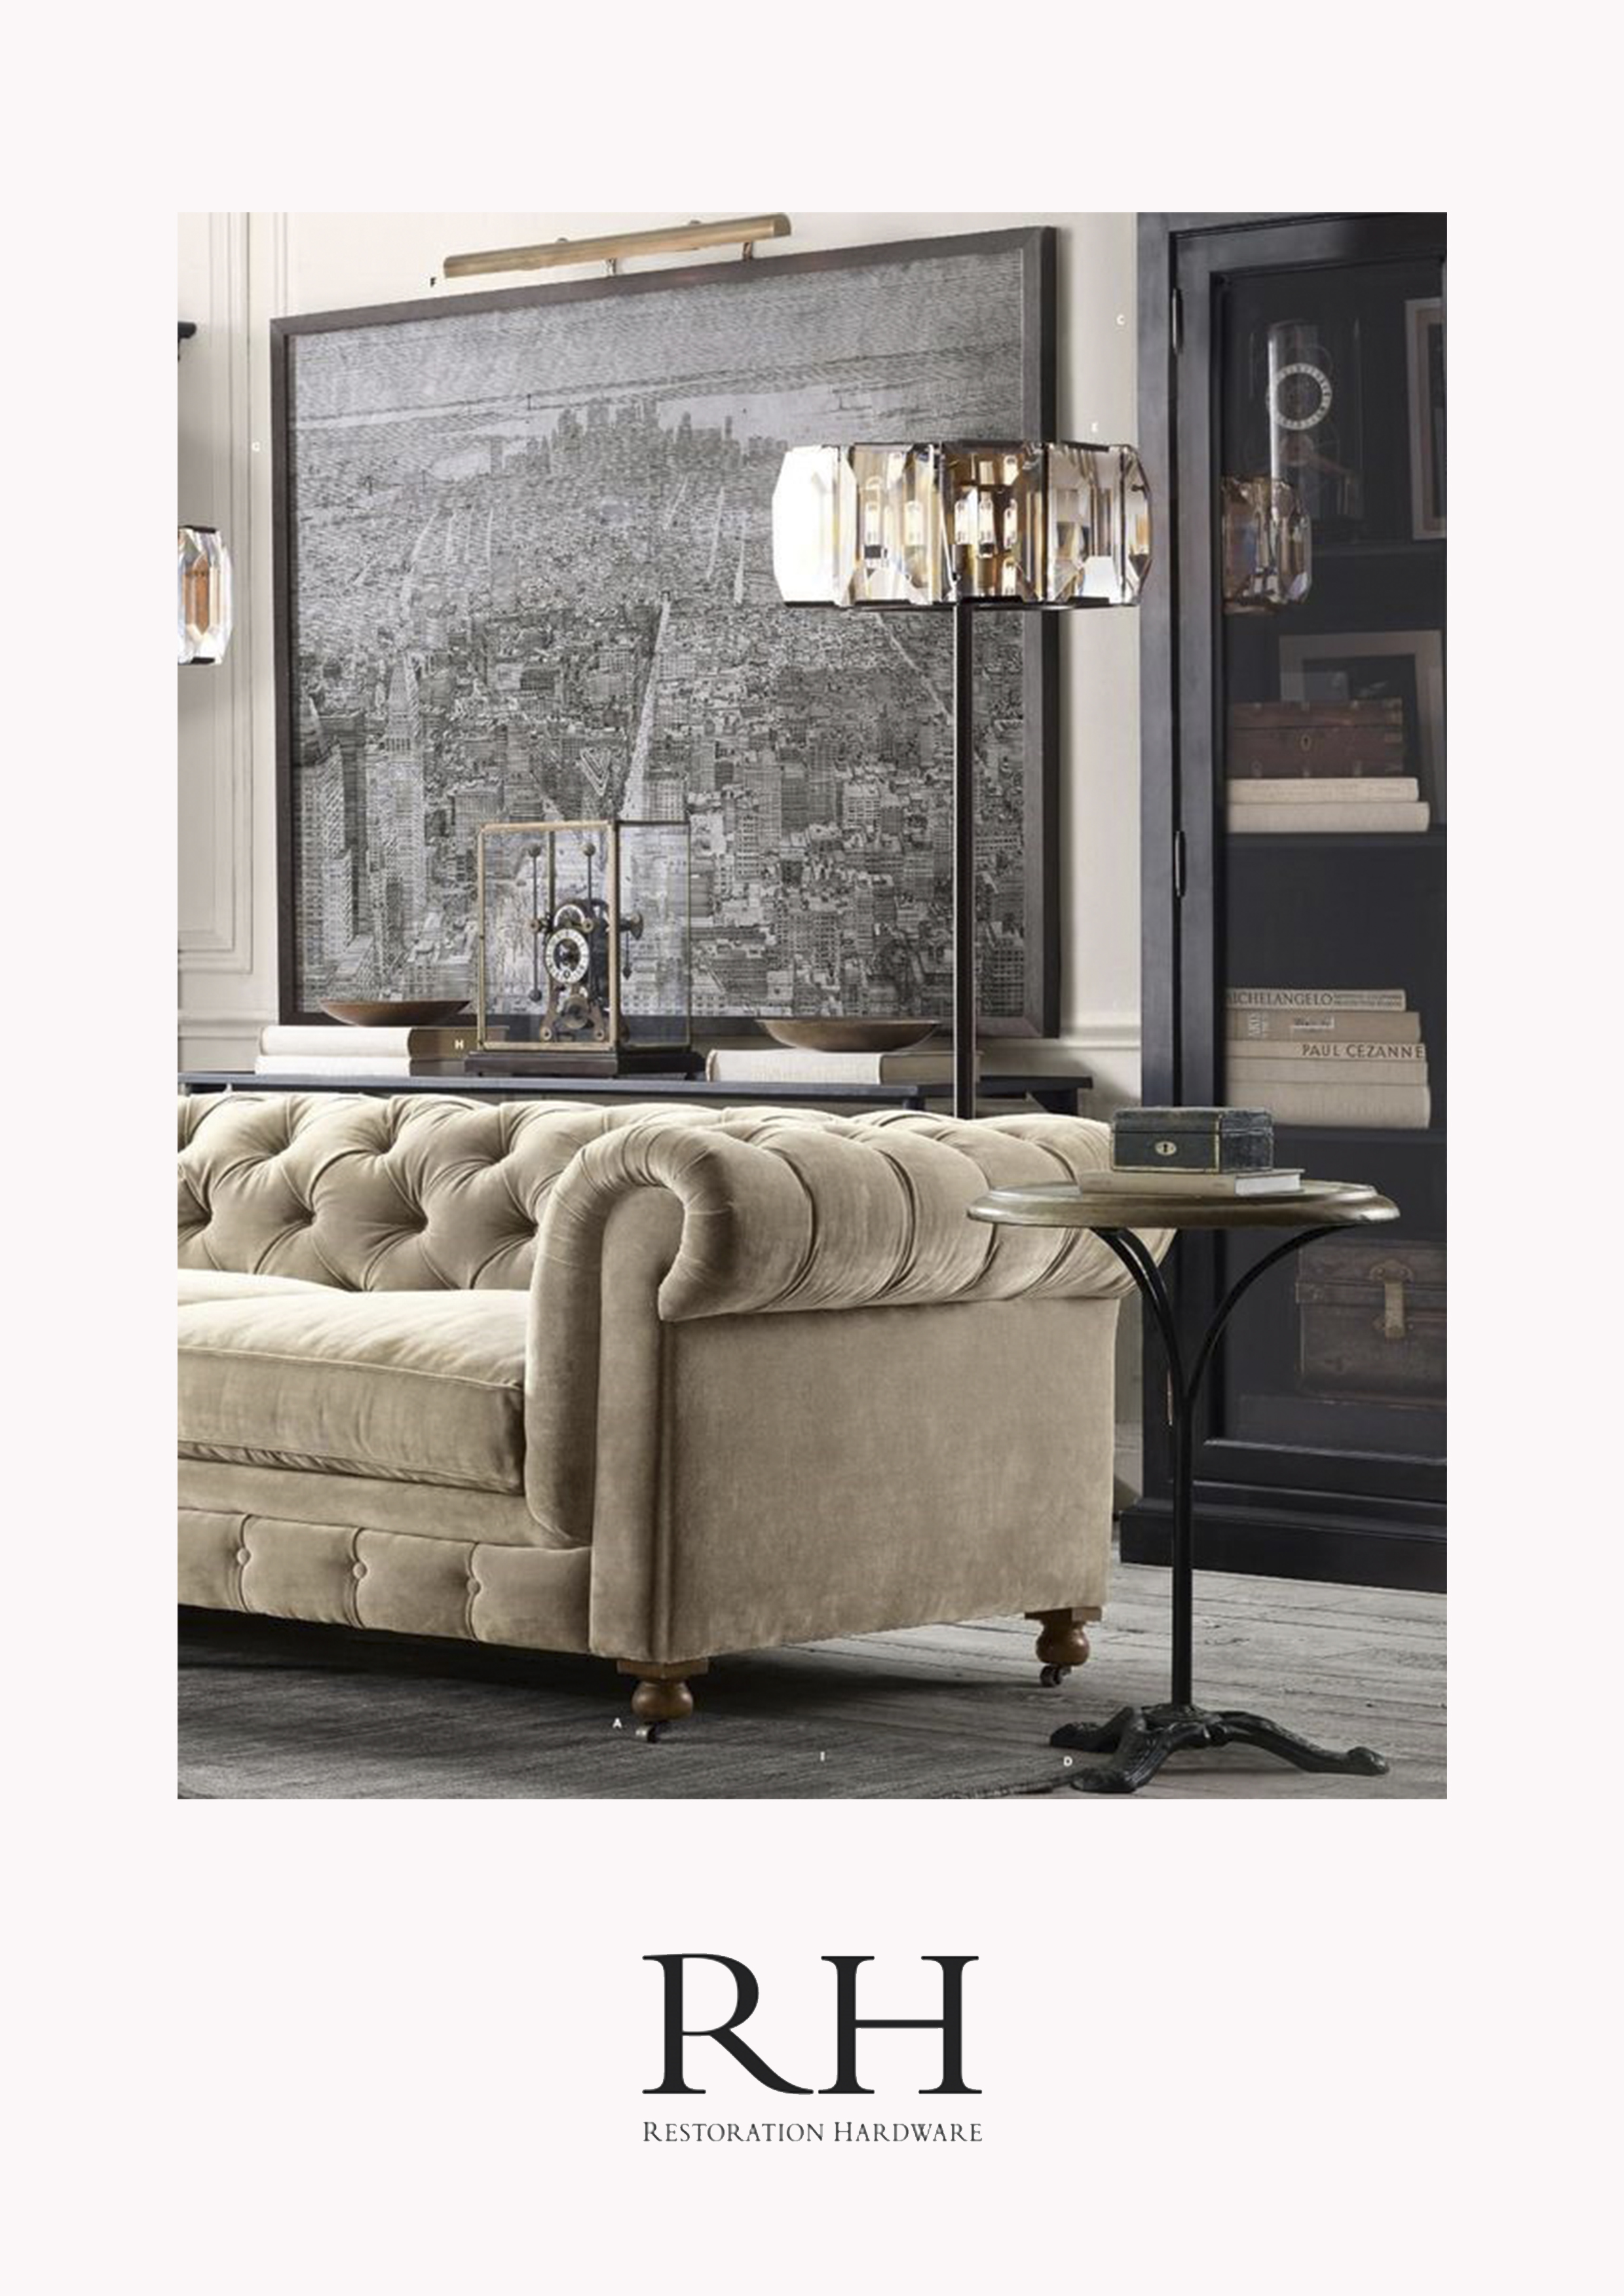 The Most Expensive Furniture Brands in the World most expensive furniture brands in the world The Most Expensive Furniture Brands in the World The Most Expensive Furniture Brands in the World Restoration Hardware